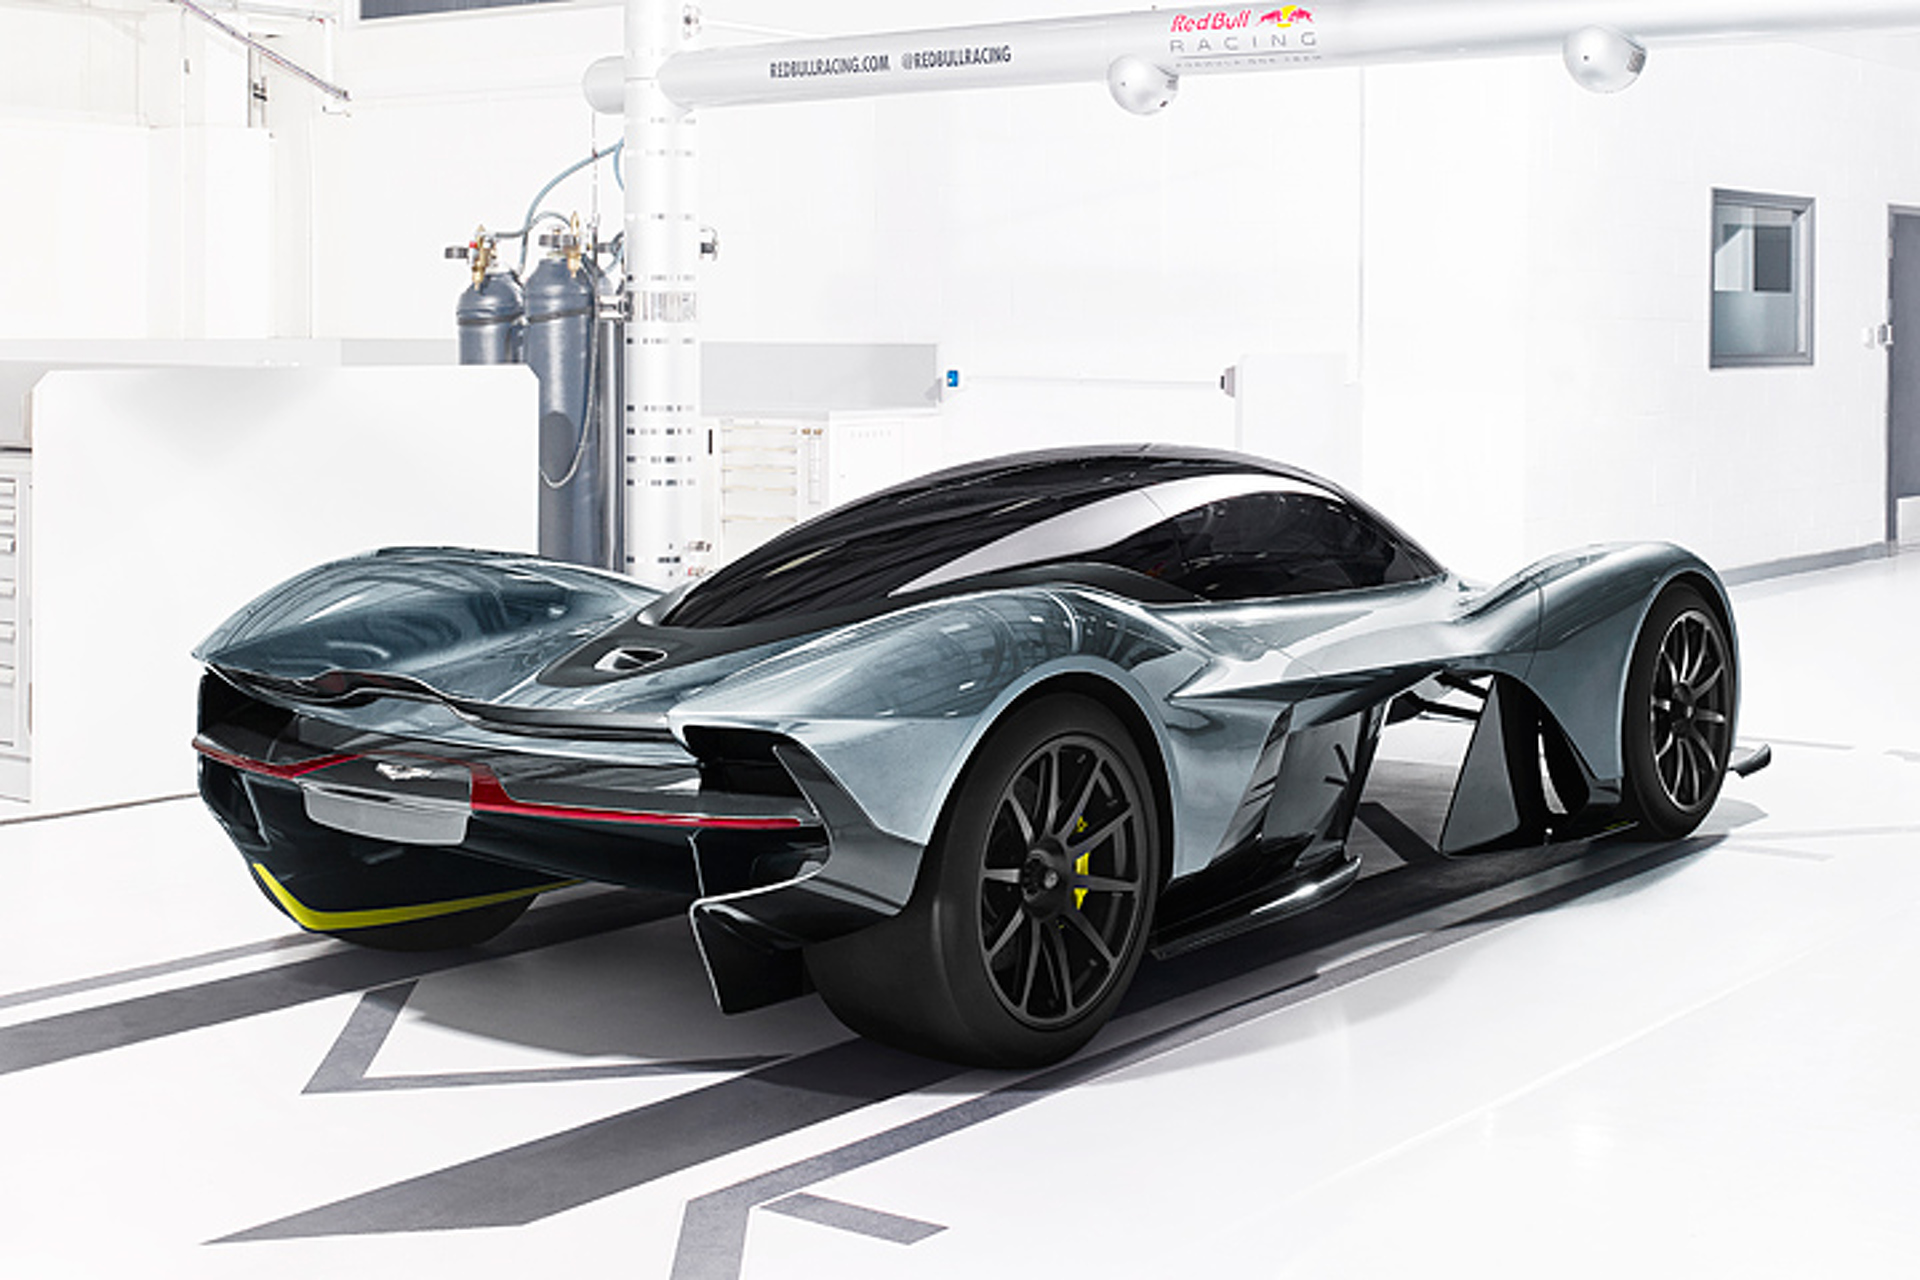 Meet the All-New Aston Martin Red Bull Hypercar